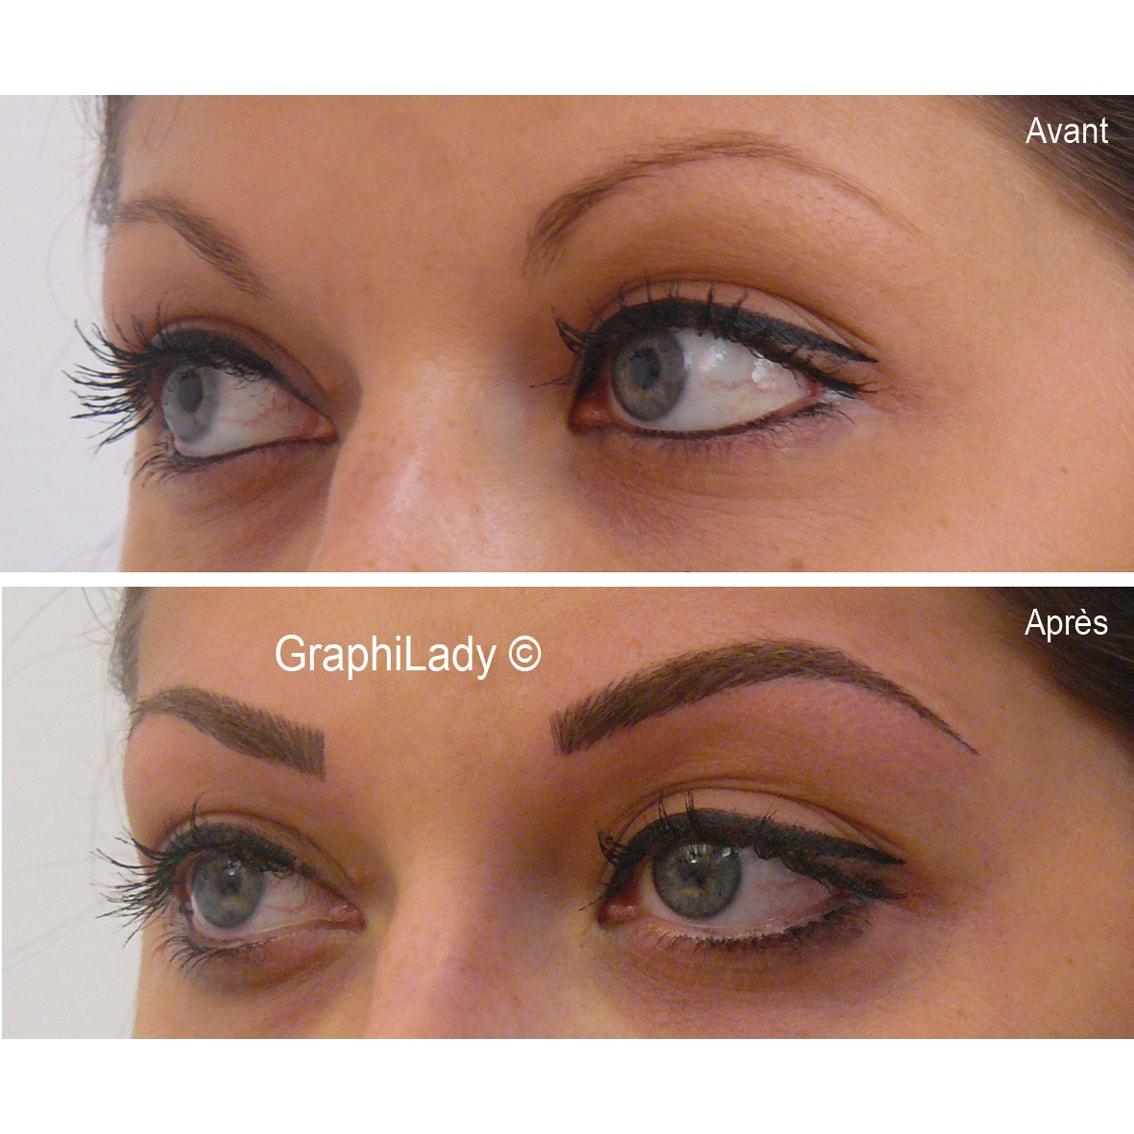 maquillage permanent sourcils 13 graphilady